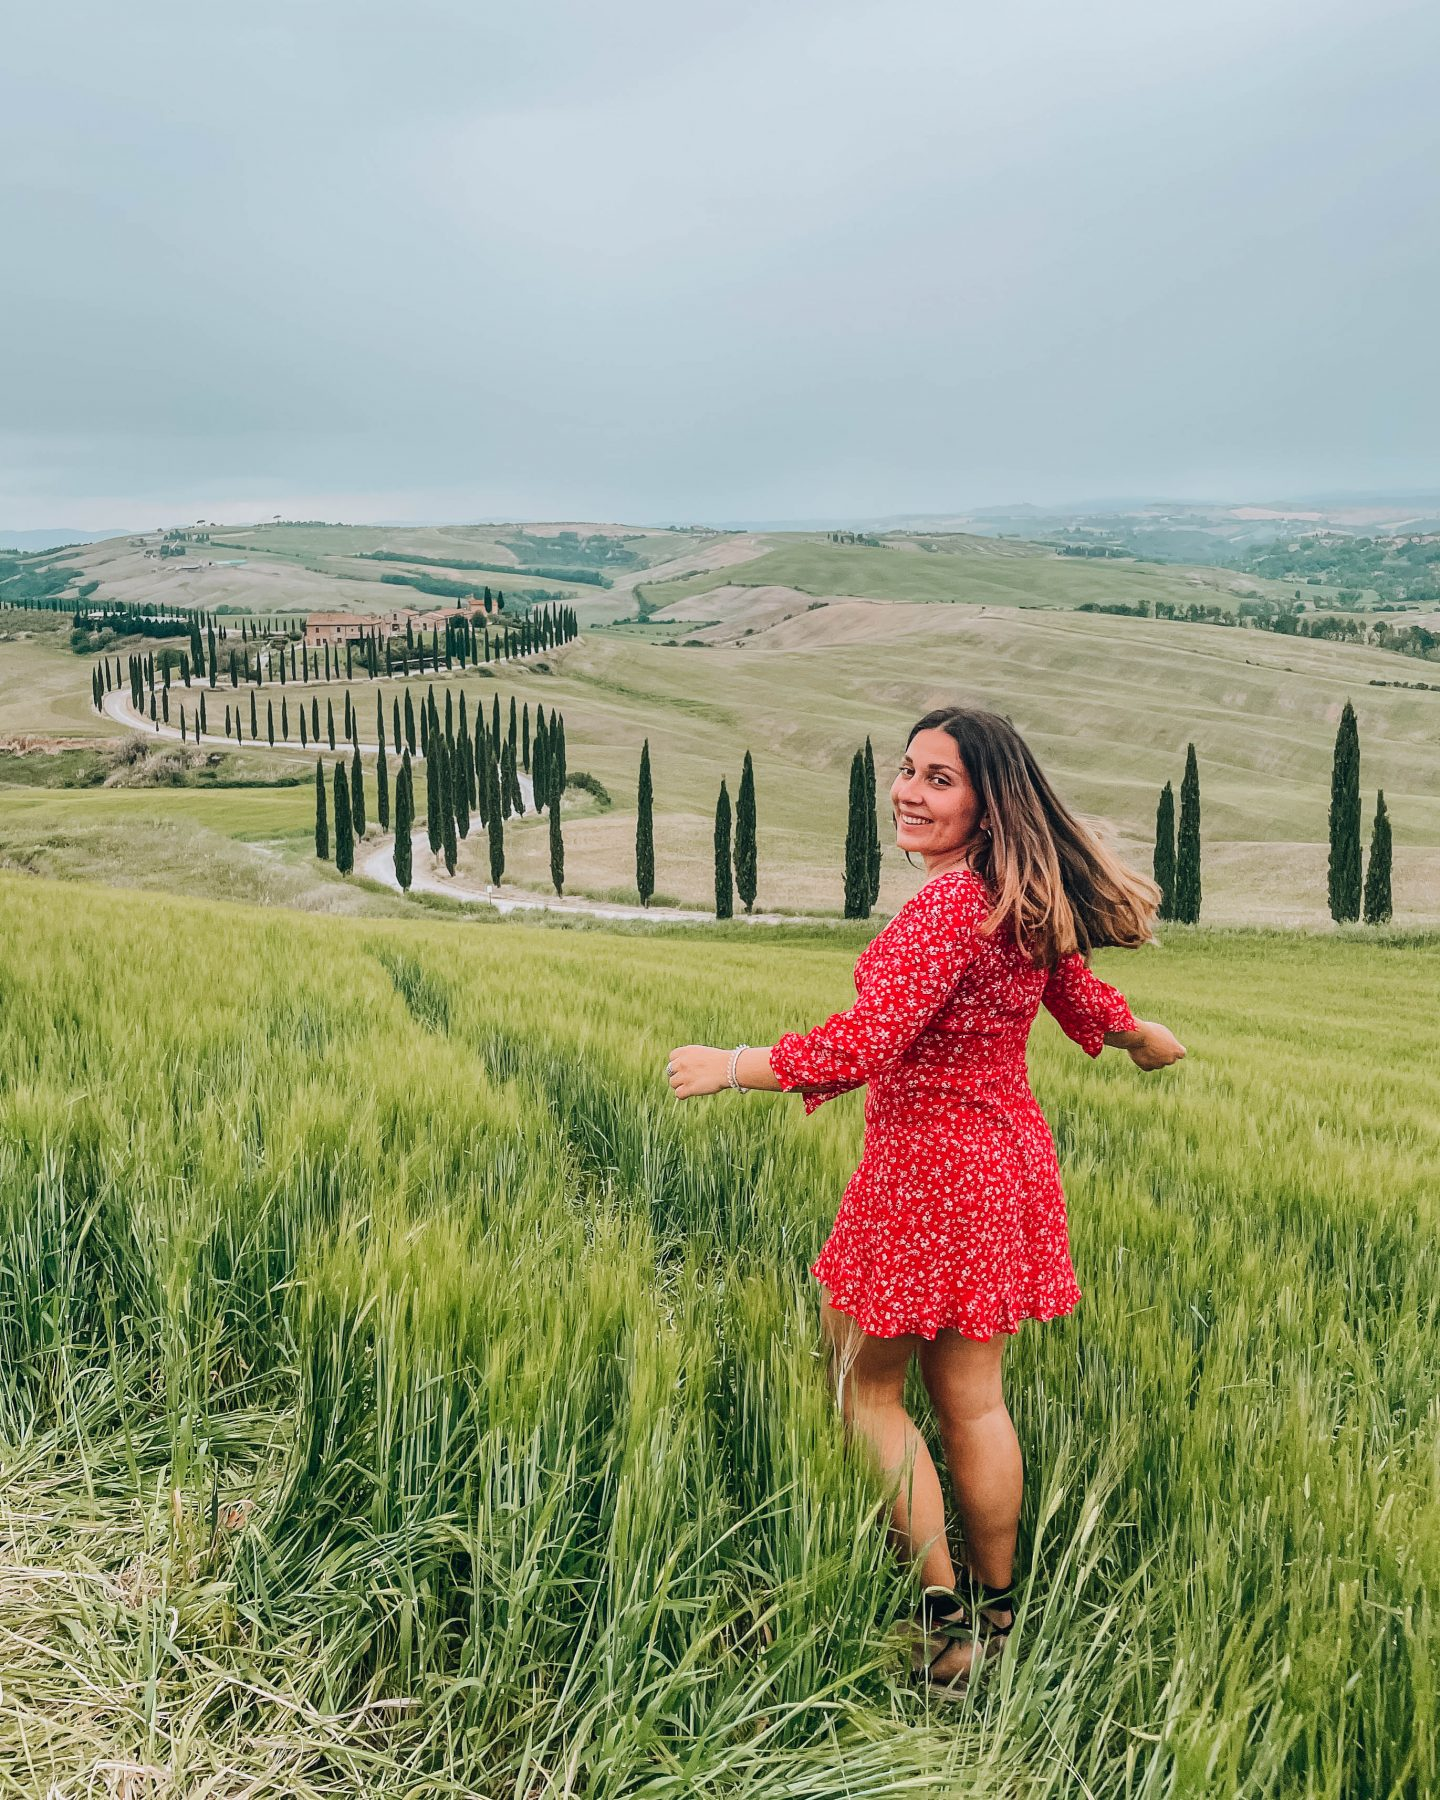 luoghi instagrammabili in val d'Orcia